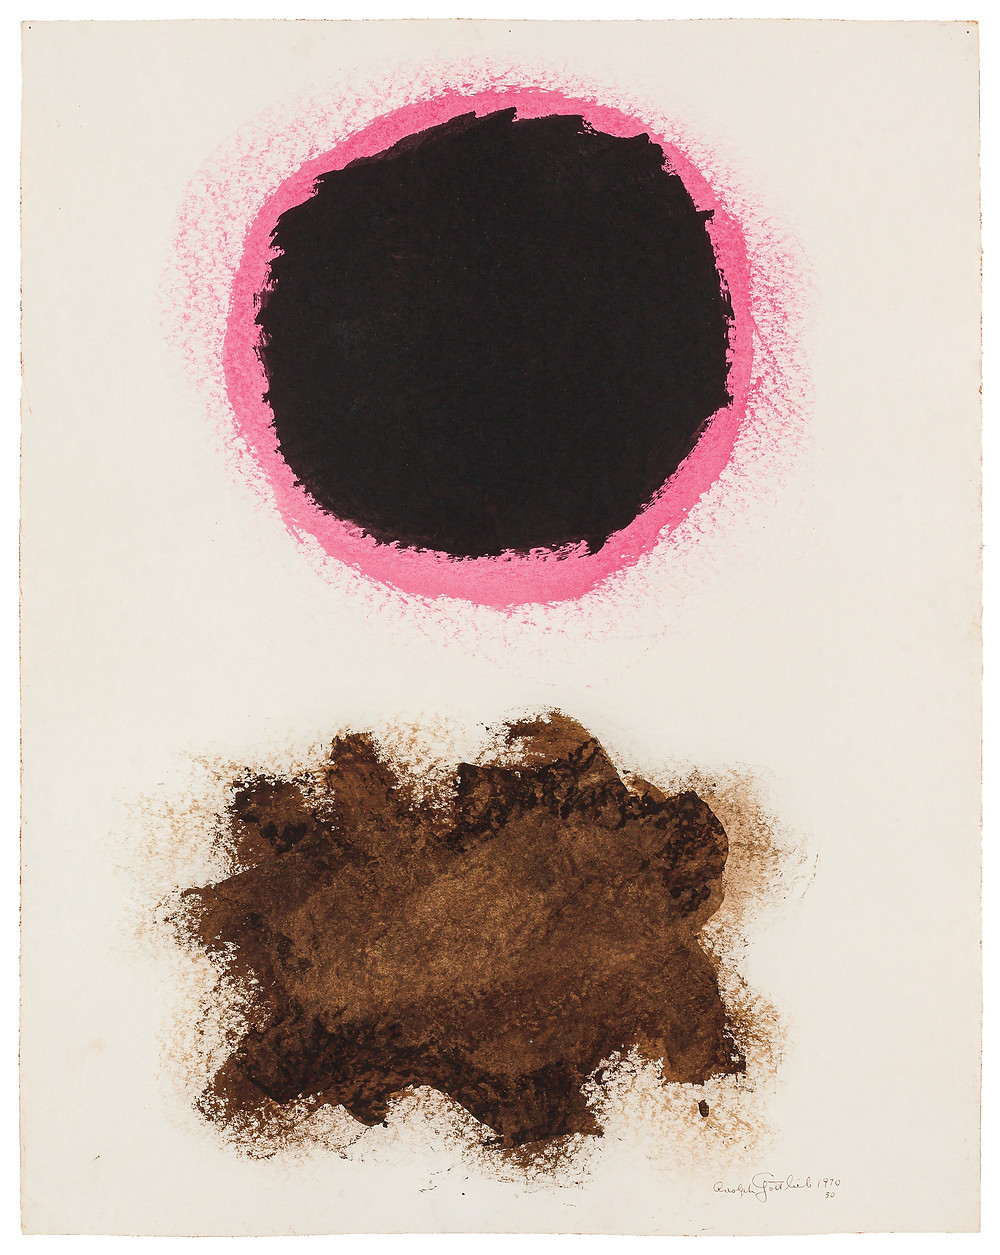 abstract painting with a black orb over a dark brown scribble